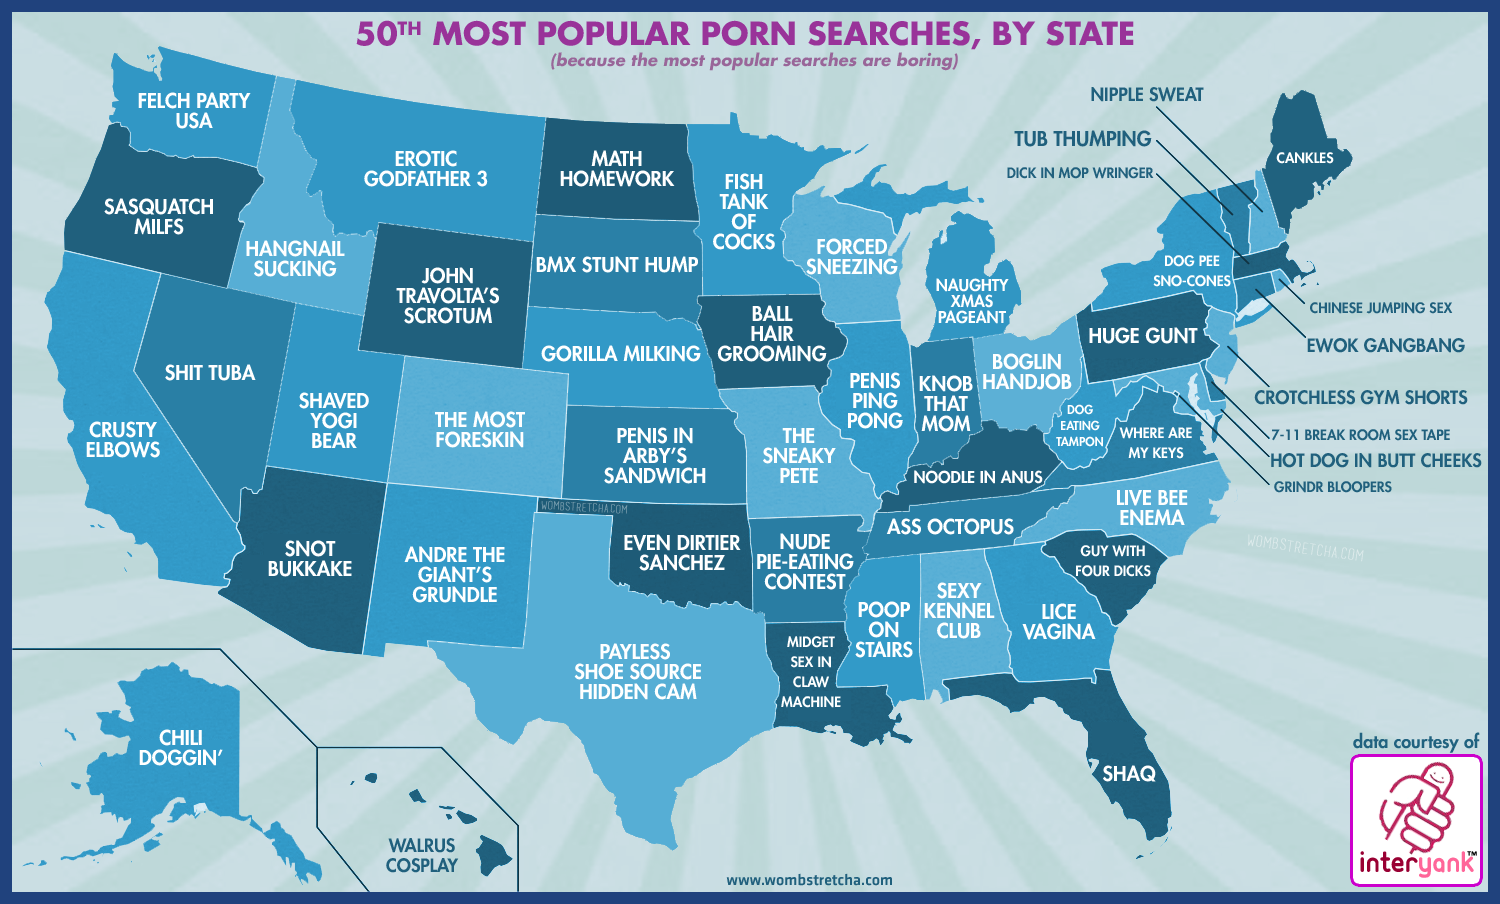 Most Popular Searches